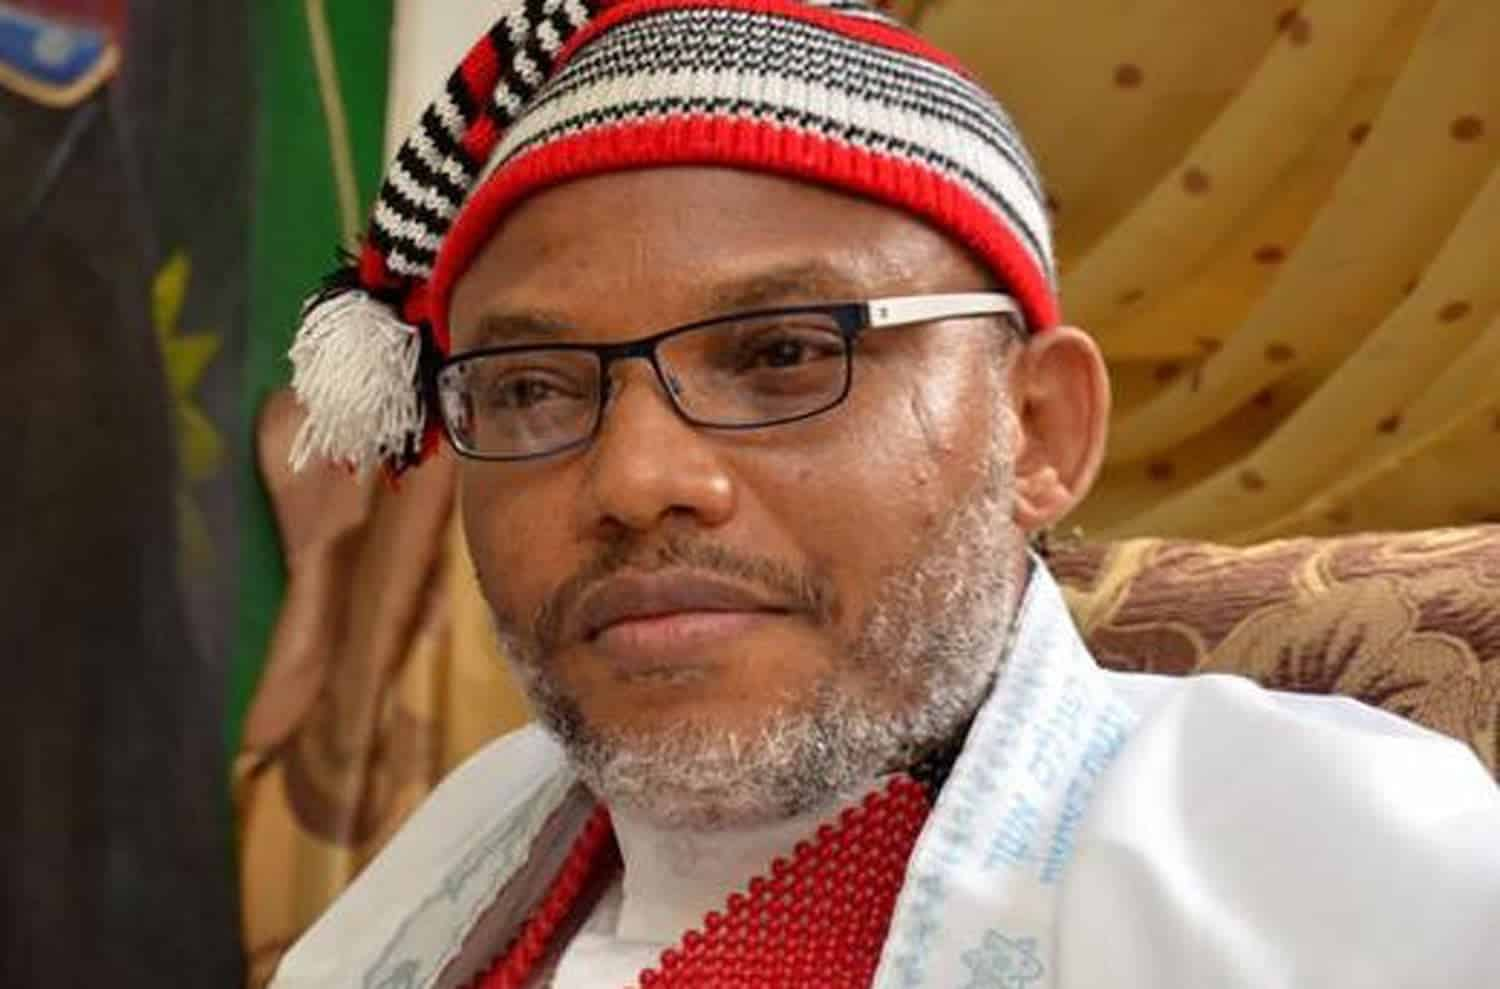 Biafra: Nnamdi Kanu Reveals Those Behind Mysterious Deaths In Kano